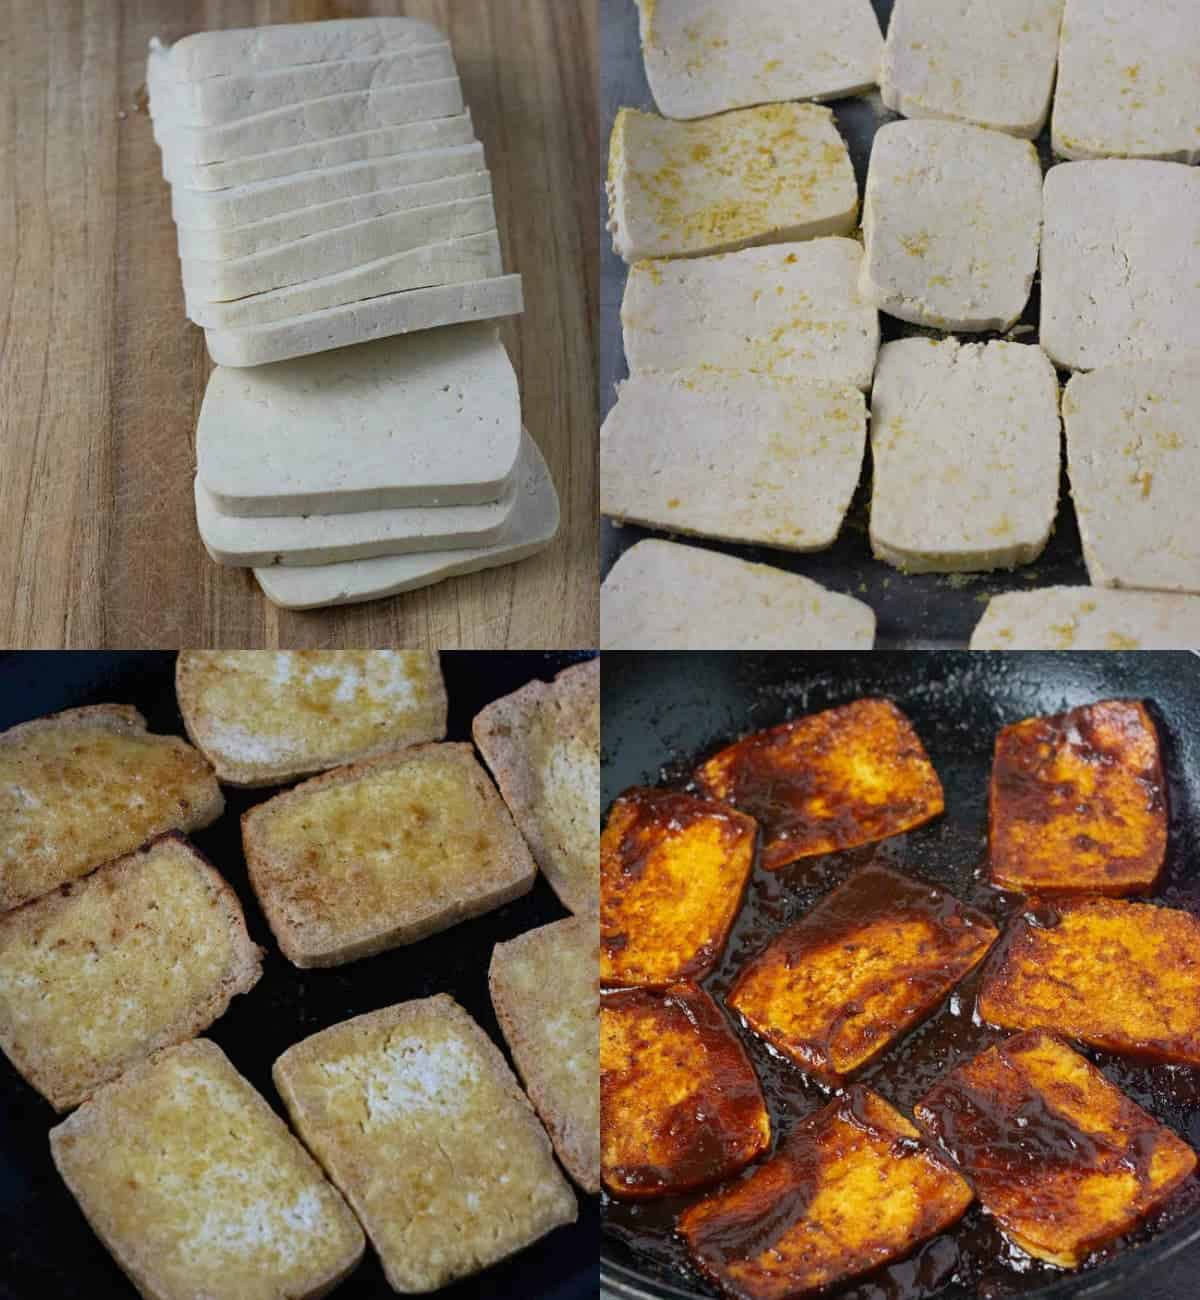 Step by step barbecue tofu images, tofu slices, seasoned slices, fried tofu and barbecue sauce tofu